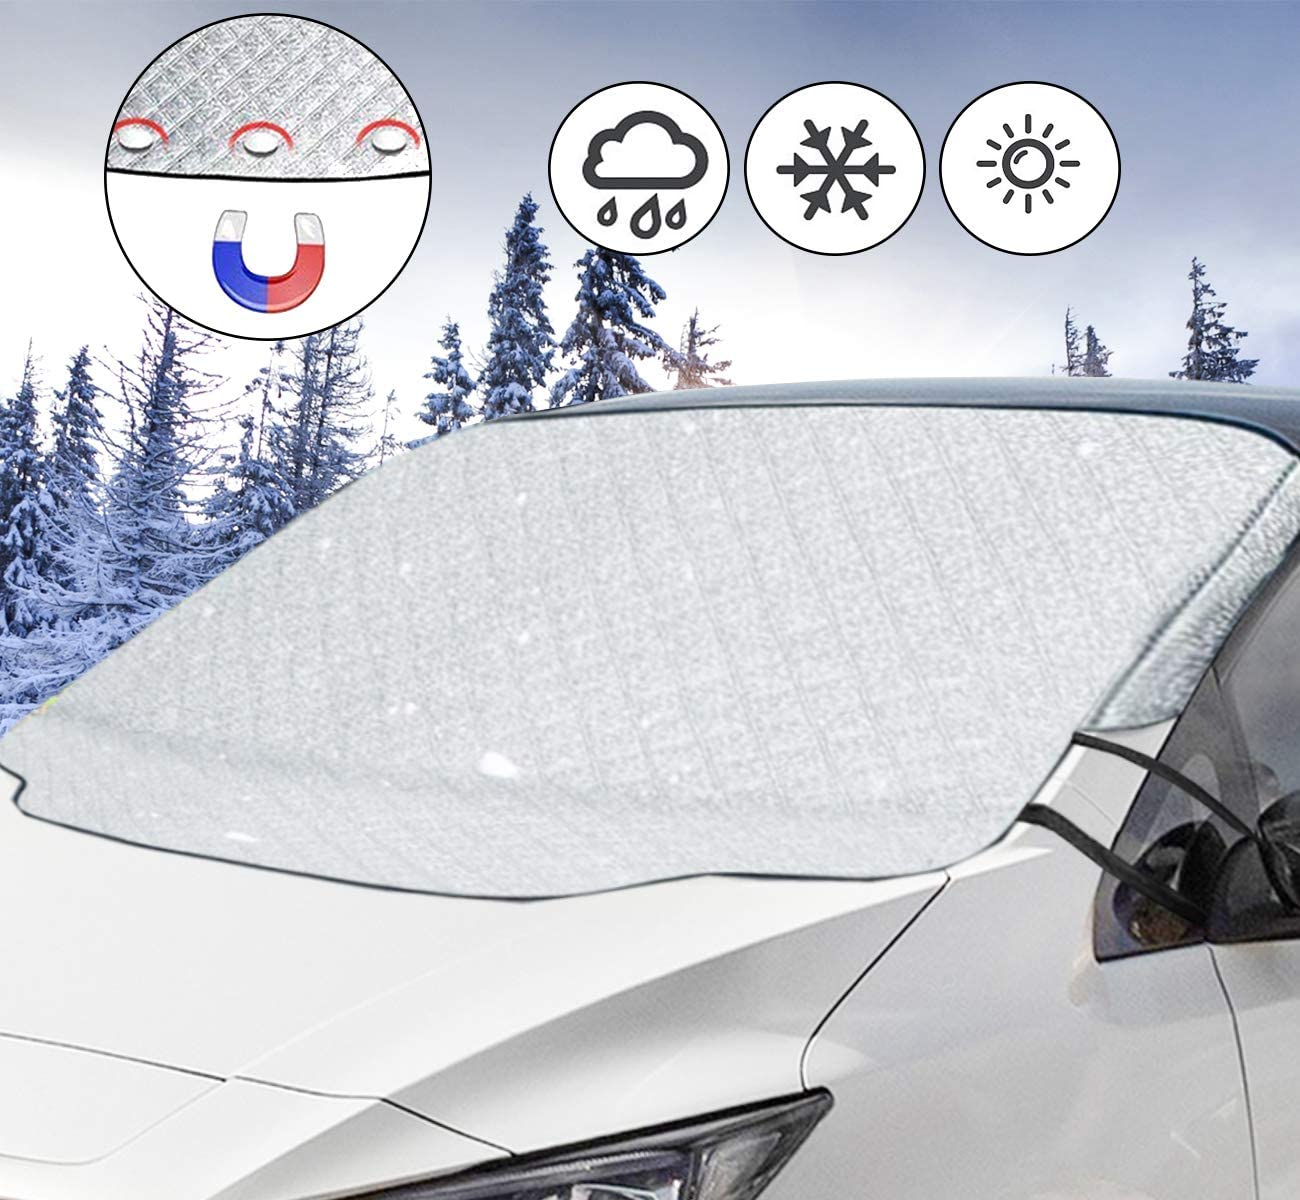 iiSPORT Car Windshield Cover Magnetic Snow Cover Heavy Duty Car Windscreen Frost Protector Ice Guard Dust Sun UV Resistant for Cars Standard Car Size 145 * 111cm SUVs in All Weather